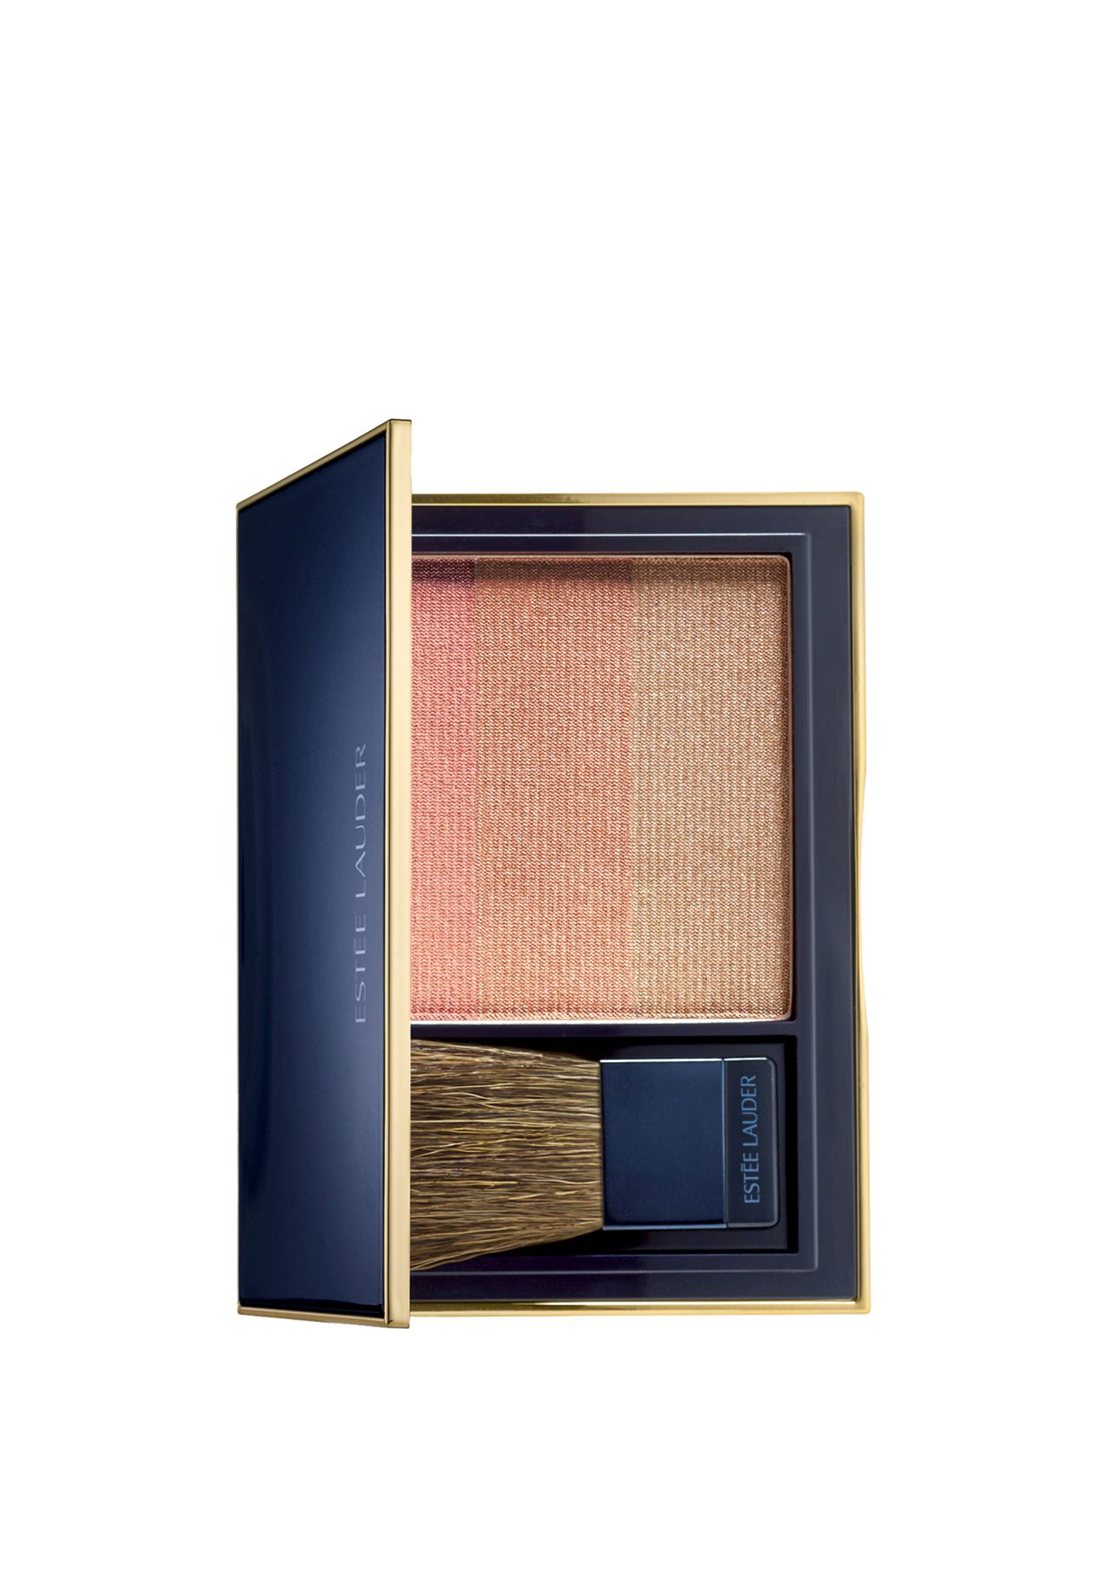 Estee Lauder Pure Colour Envy Shimmering BlushLights, Sinful Peach